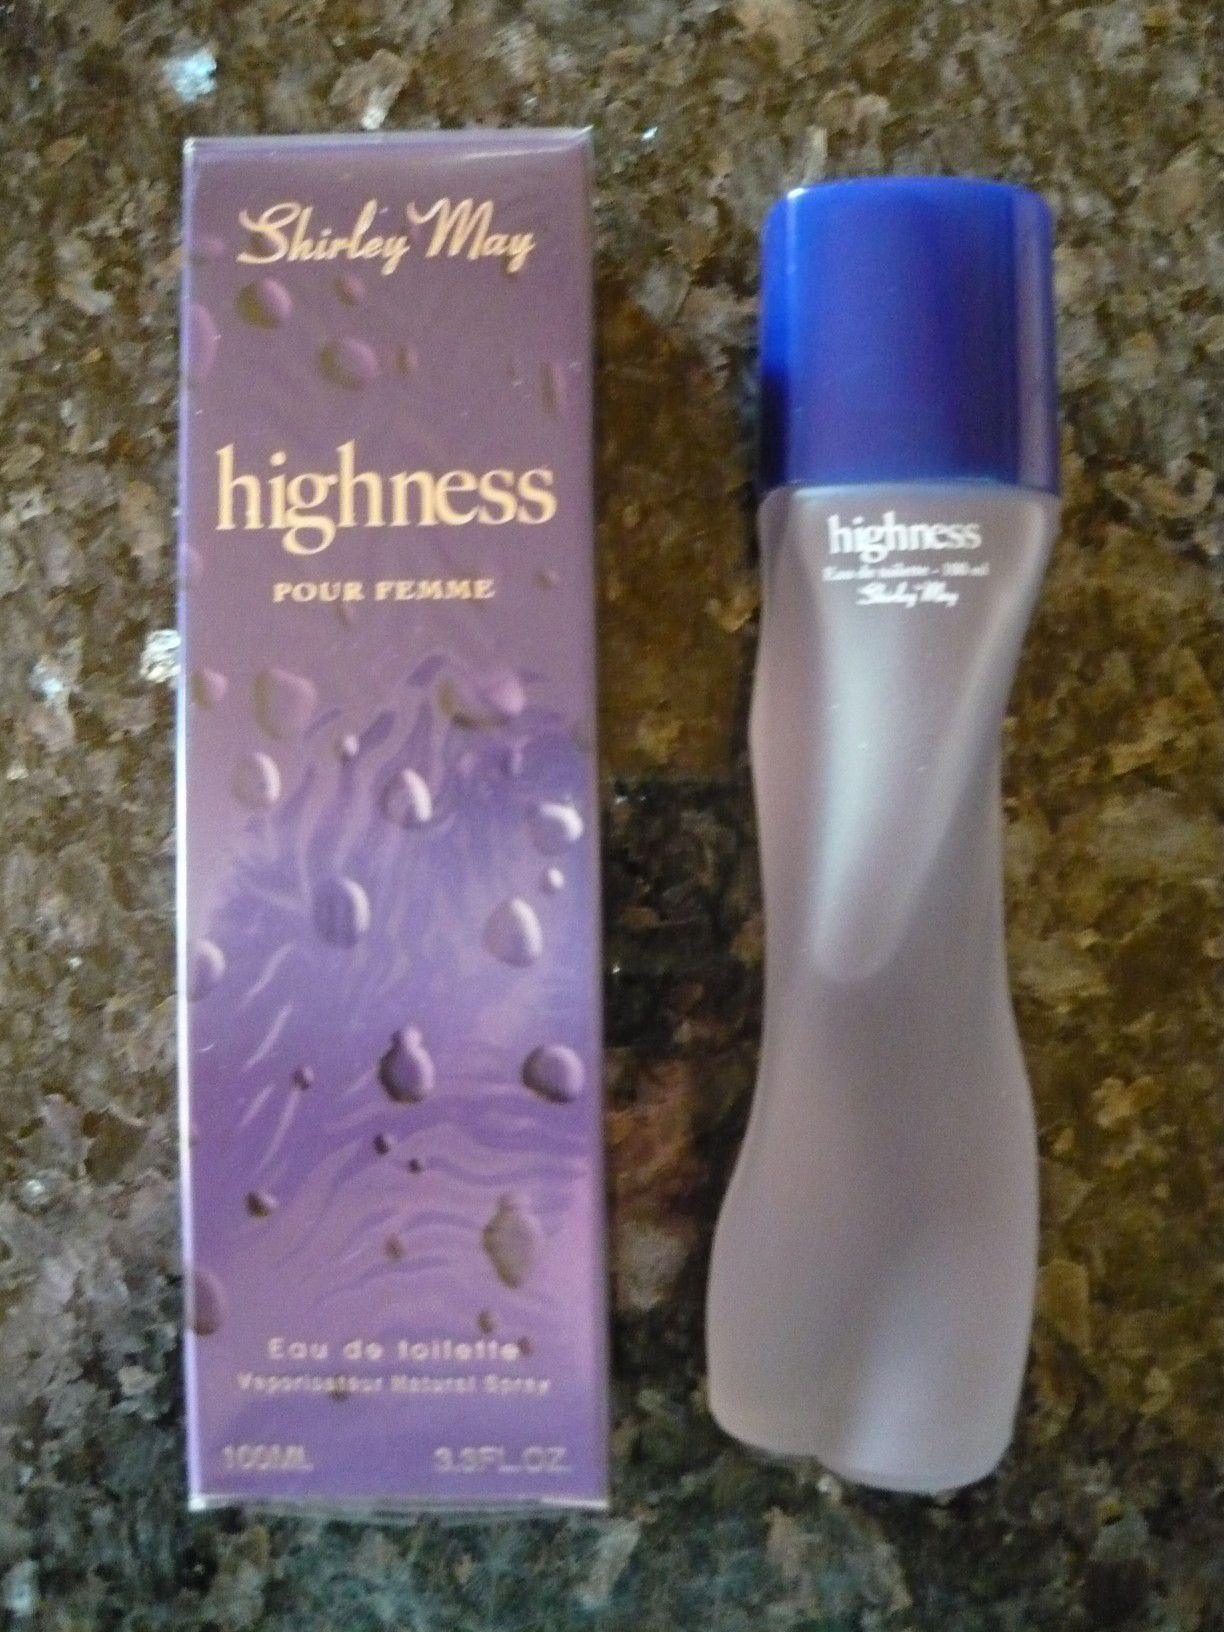 Shirley May  HIGHNESS   Eau de Toilette